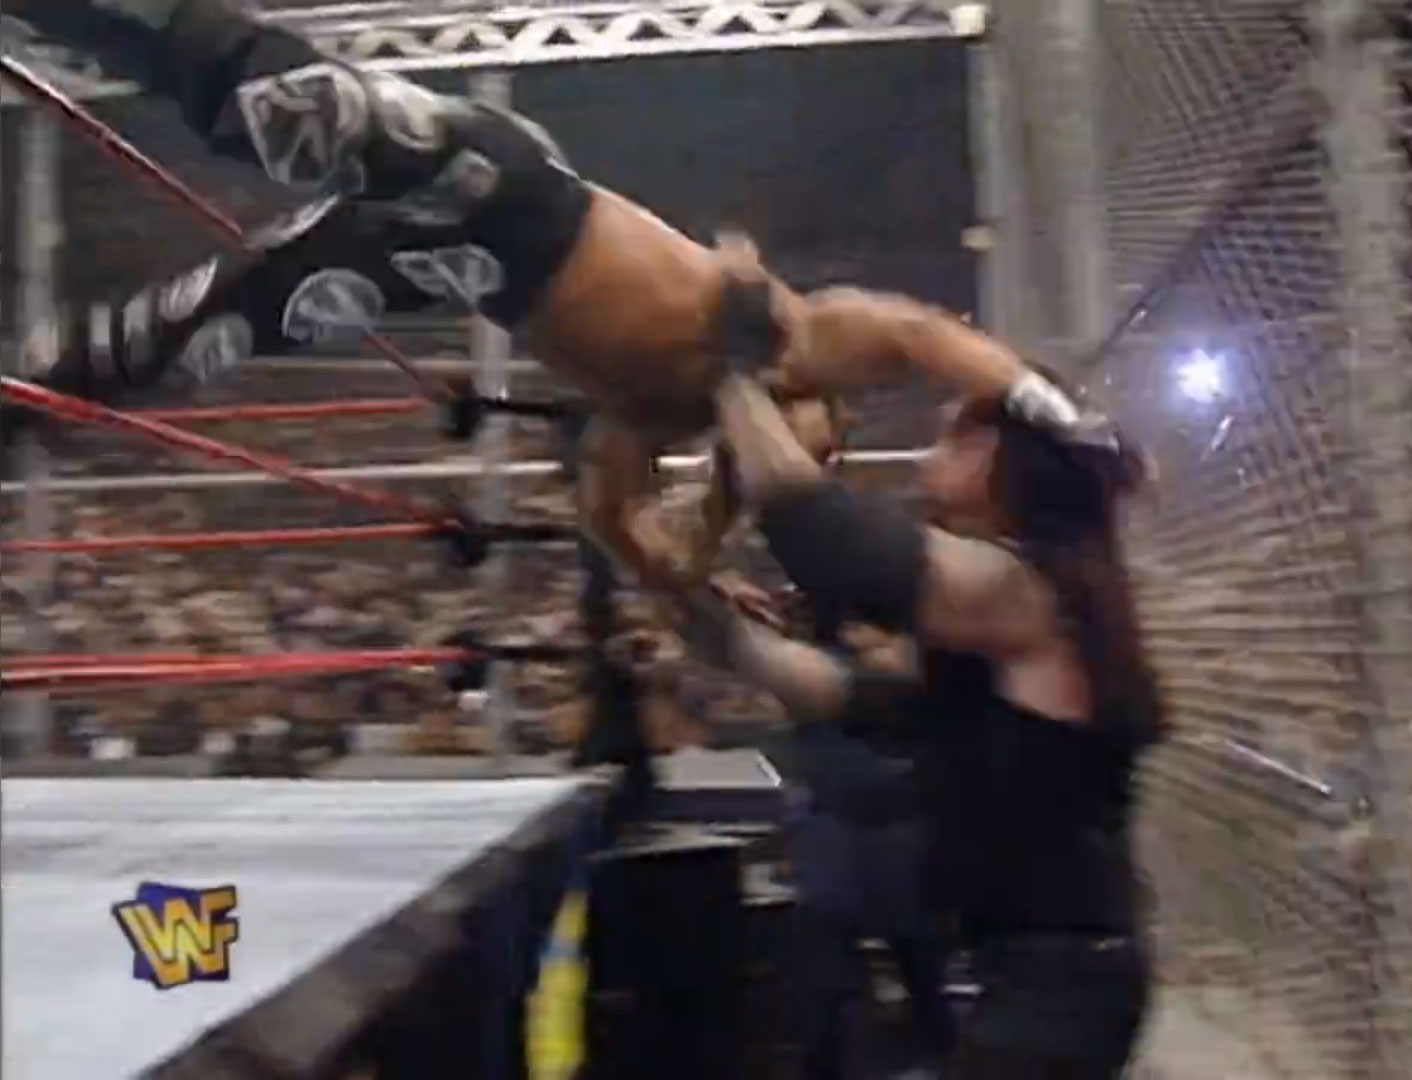 Shawn Michaels vs. The Undertaker Hell In A Cell, WWF In Your House 18: Badd Blood Oct 5th 1997